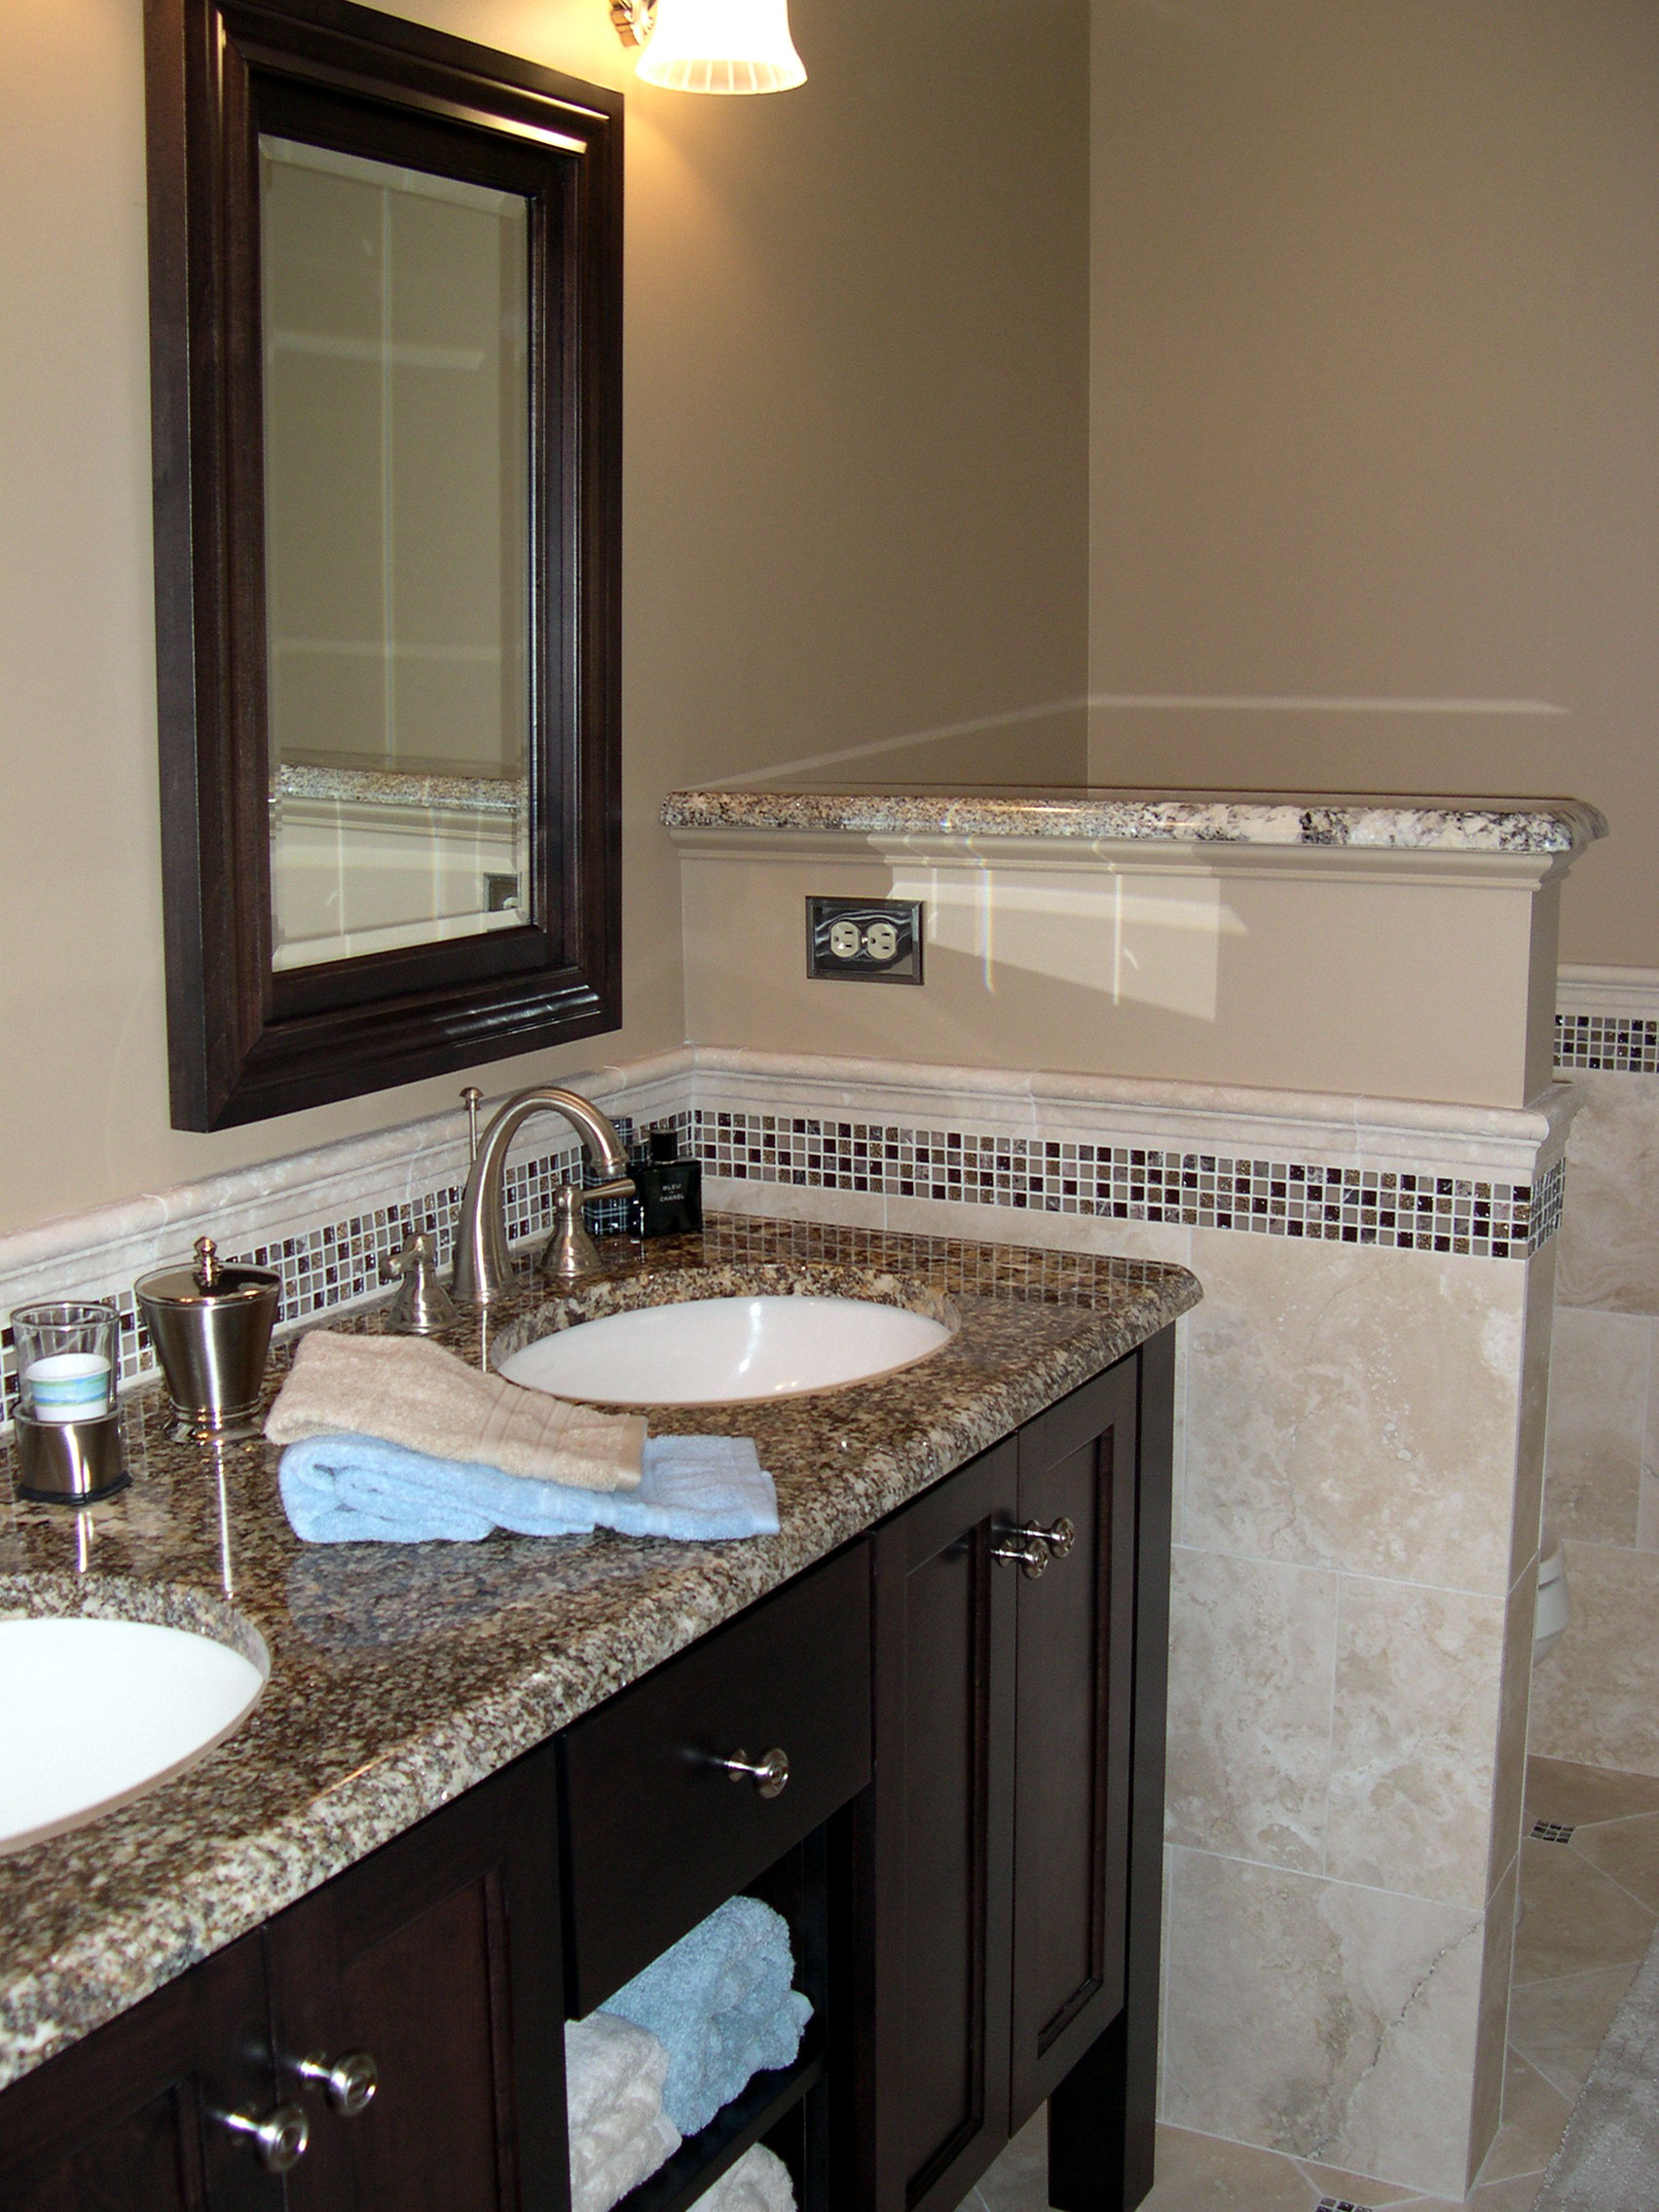 Sbi professional bathroom remodeling for Professional bathroom renovations